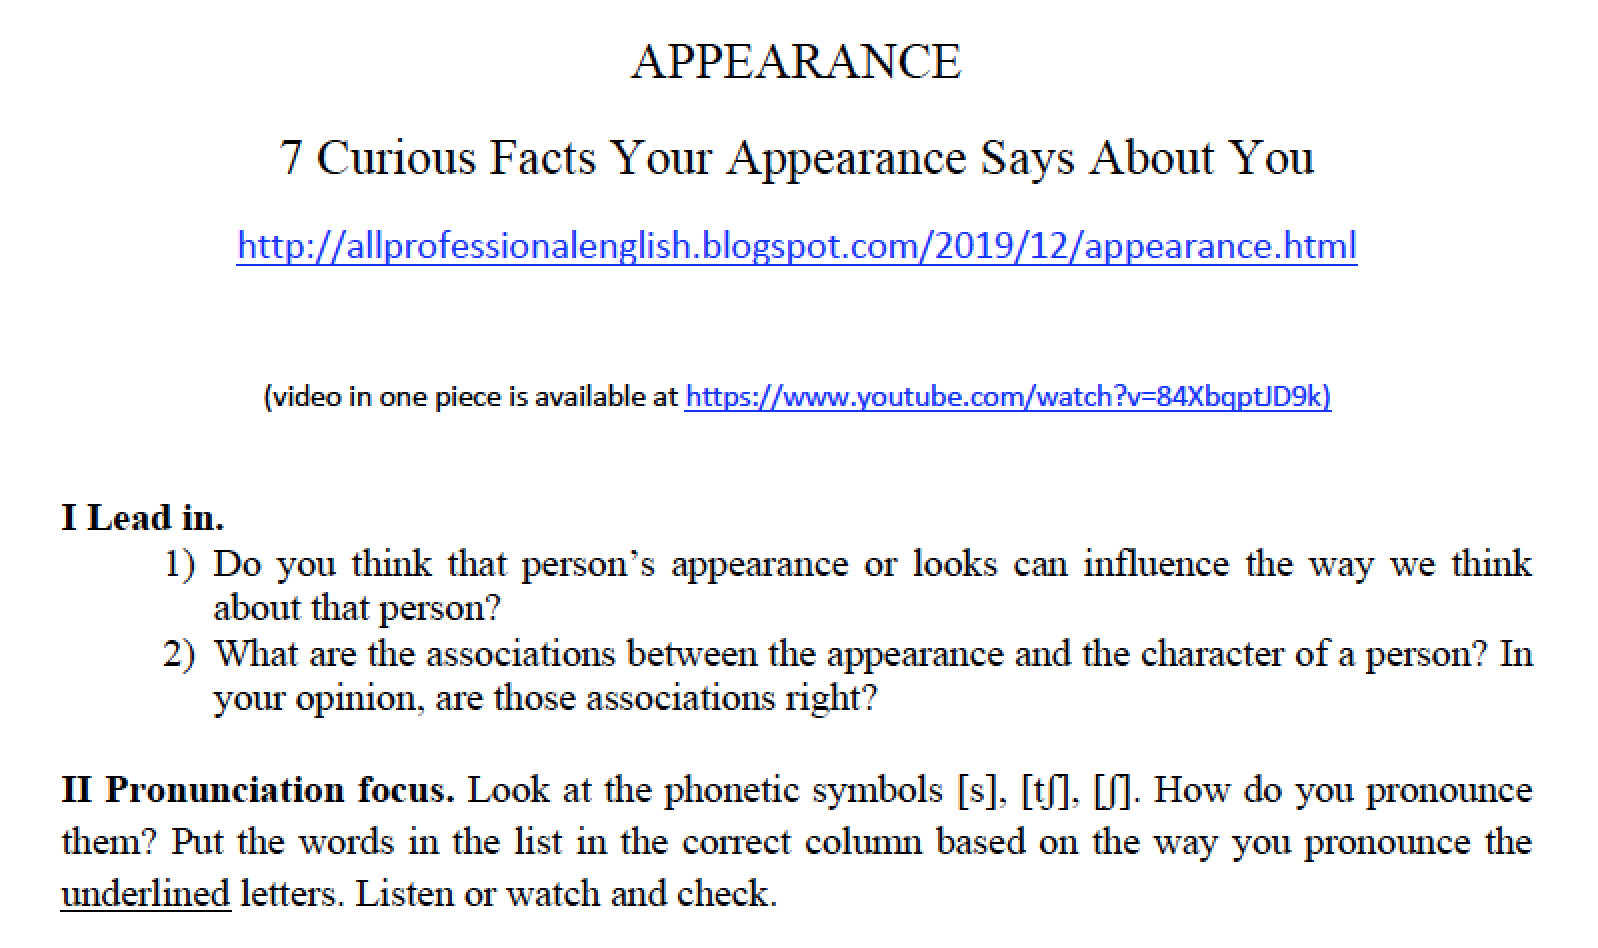 7 Curious facts your appearance can tell about you